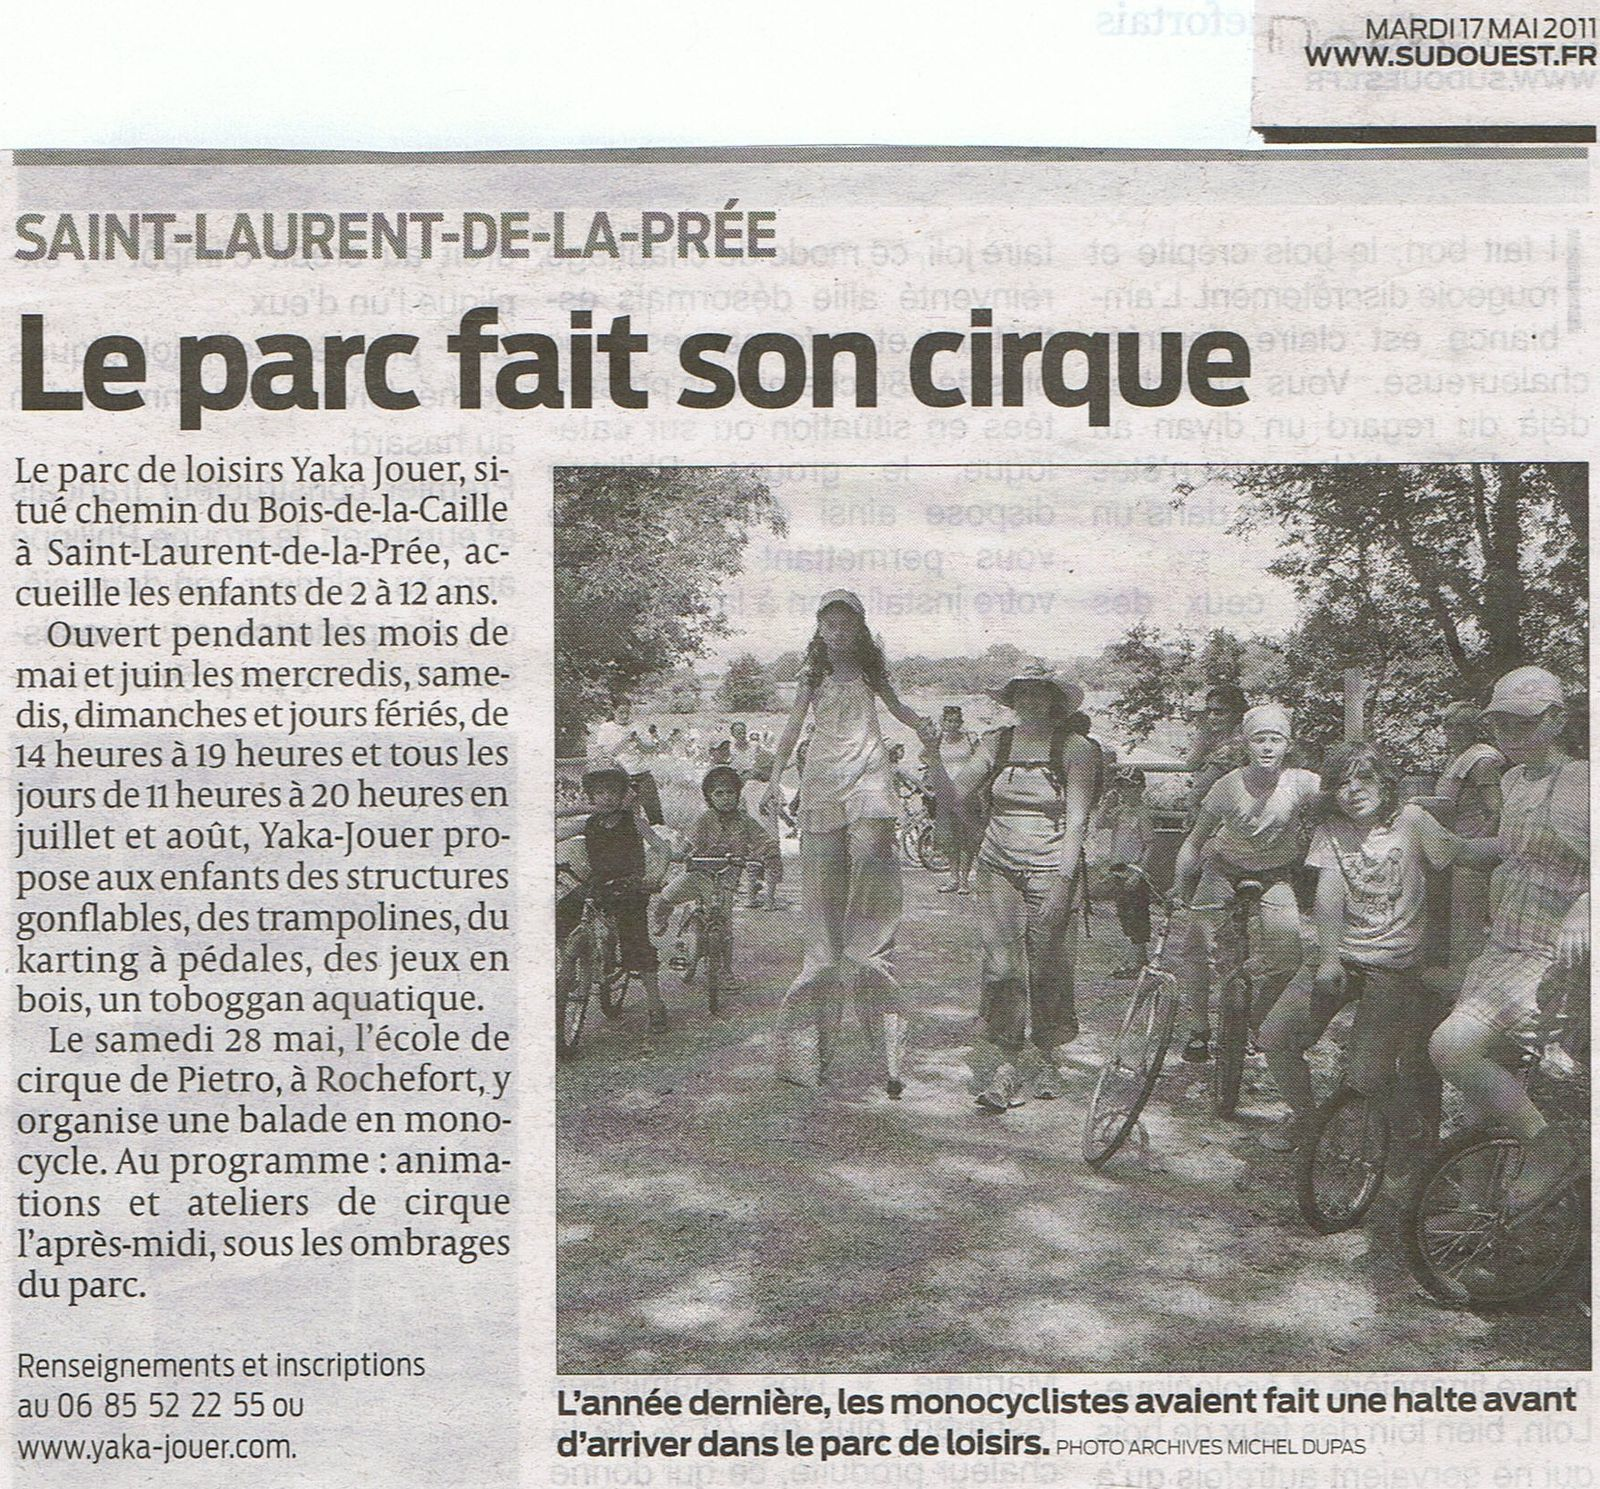 art.SO-du-17-mai-2011-Le-Parc-fait-son-cirque.jpg